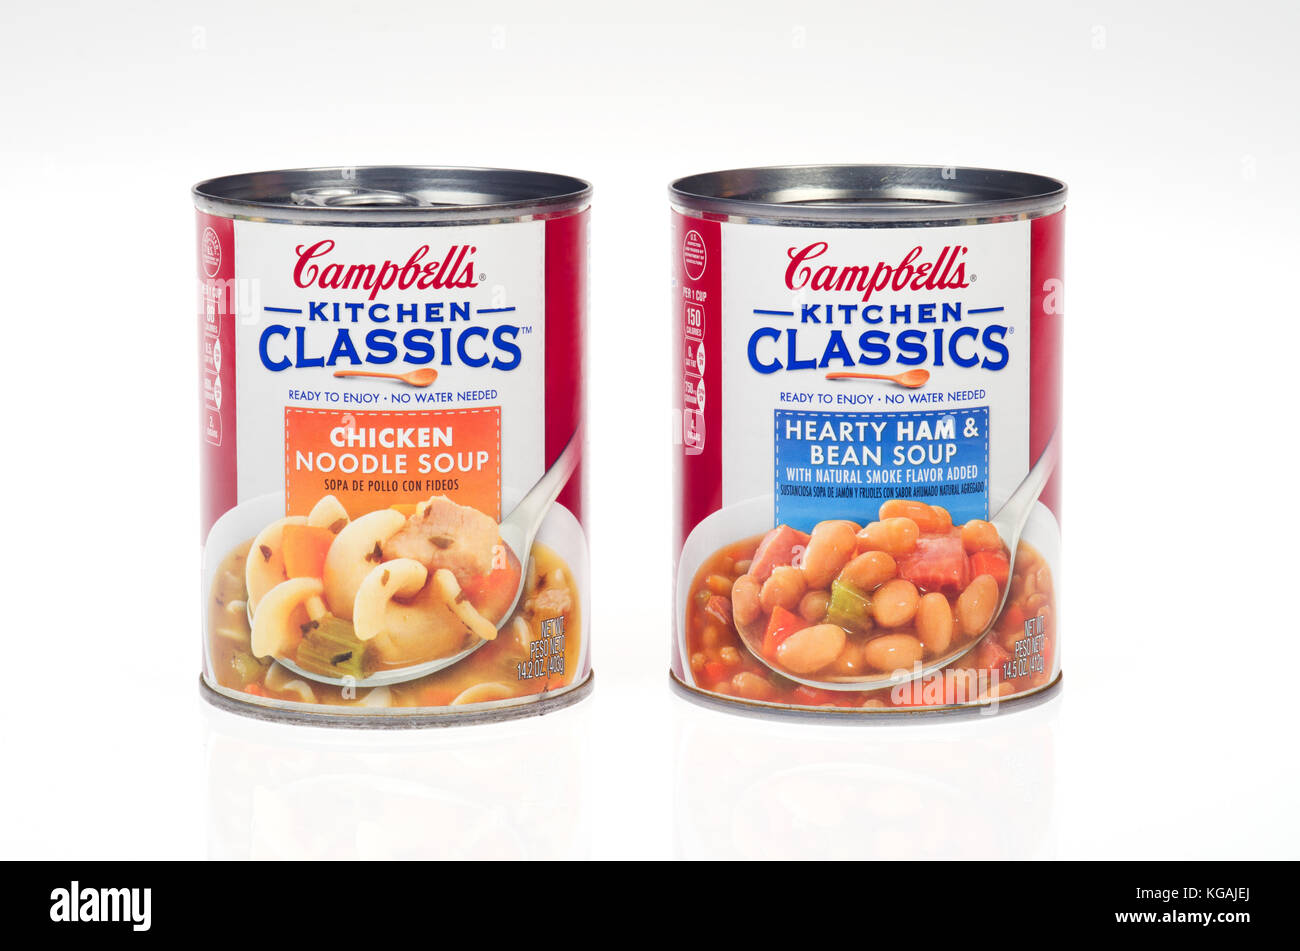 2 cans of Campbell's Kitchen Classics soup, 1 Chicken Noodle and 1 Hearty Ham and Bean - Stock Image